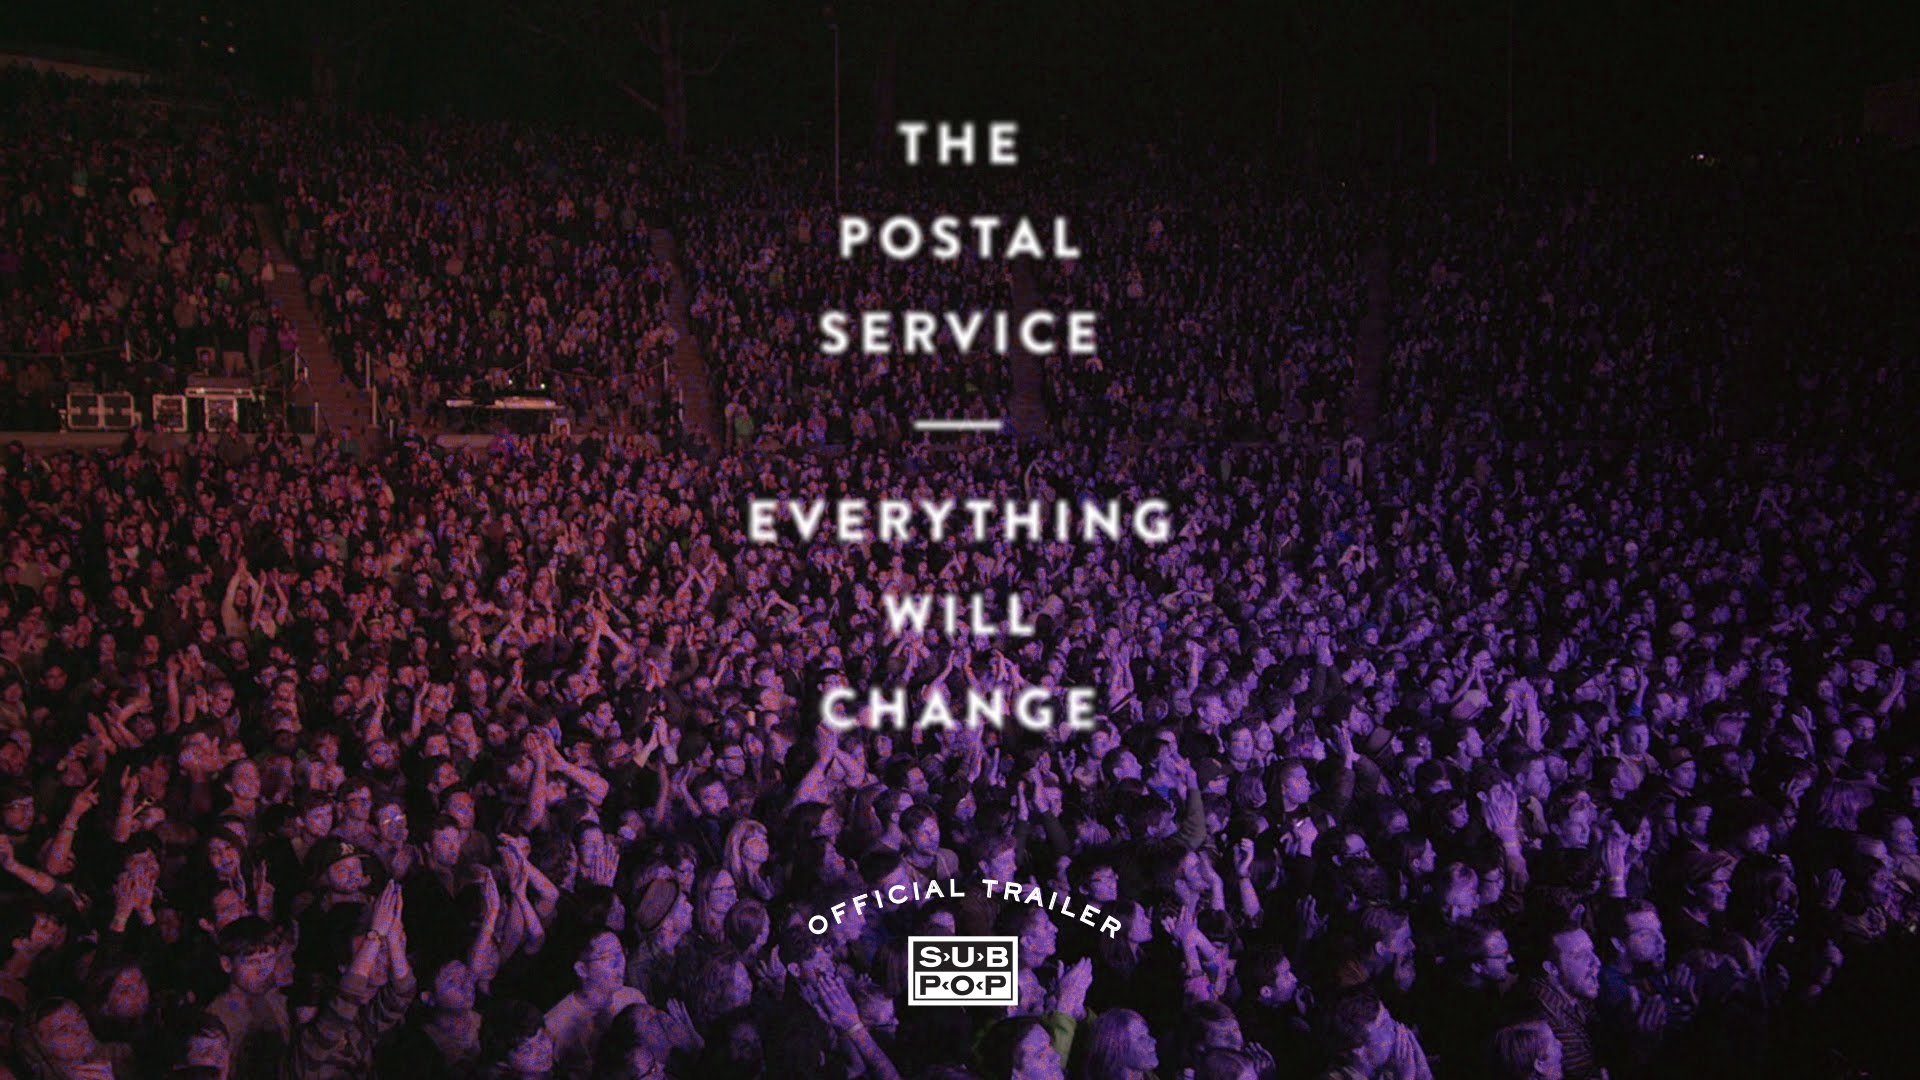 The Postal Service S Everything Will Change Documentary Concert Film Available On Dvd Blu Ray 11 24 Glide Magazine